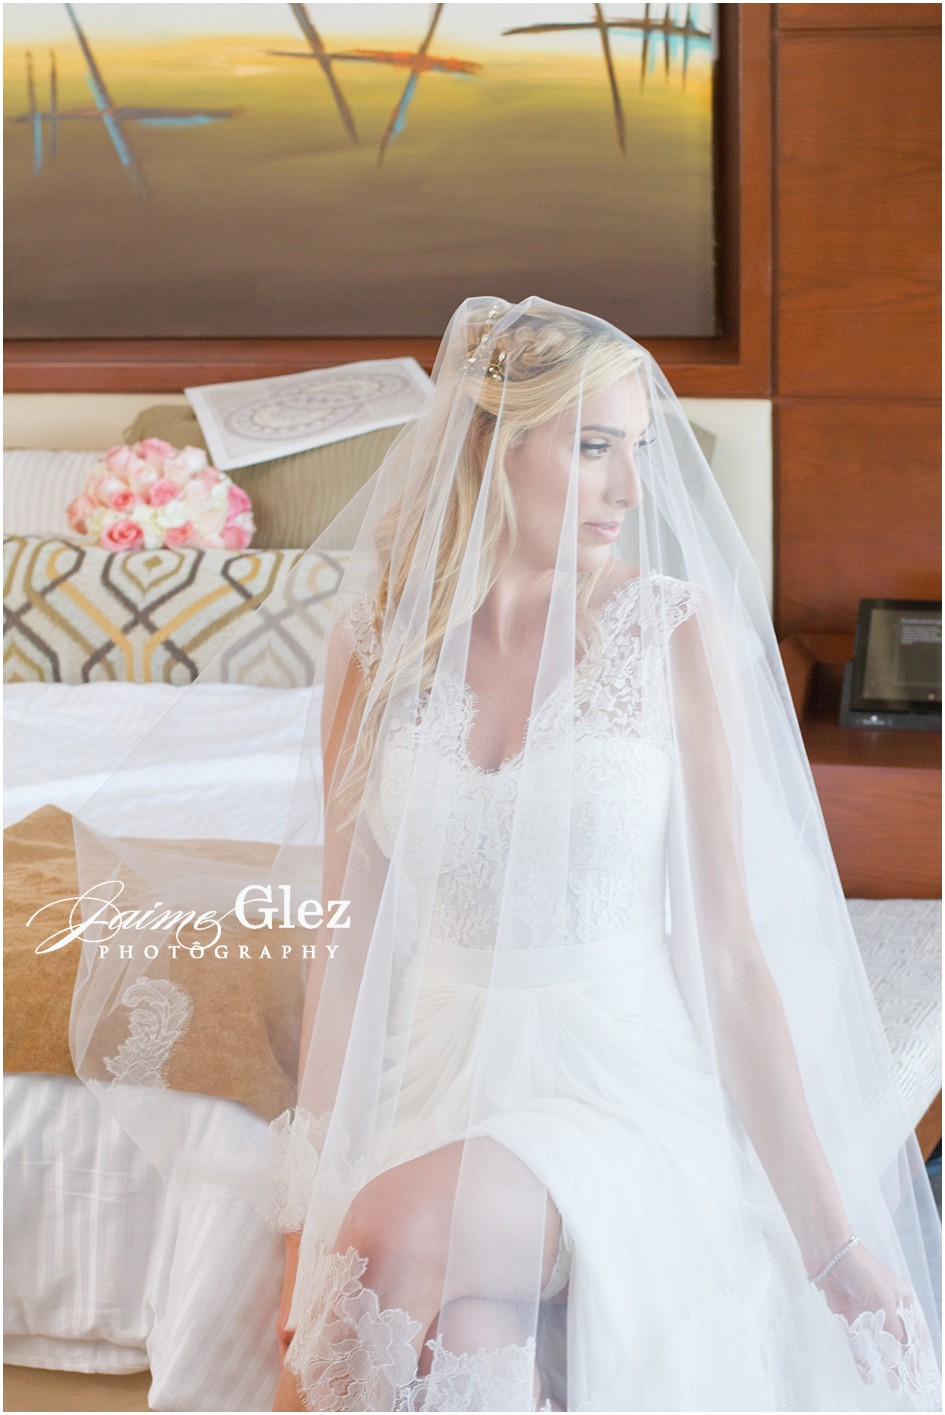 A very romantic bridal photo with veil.